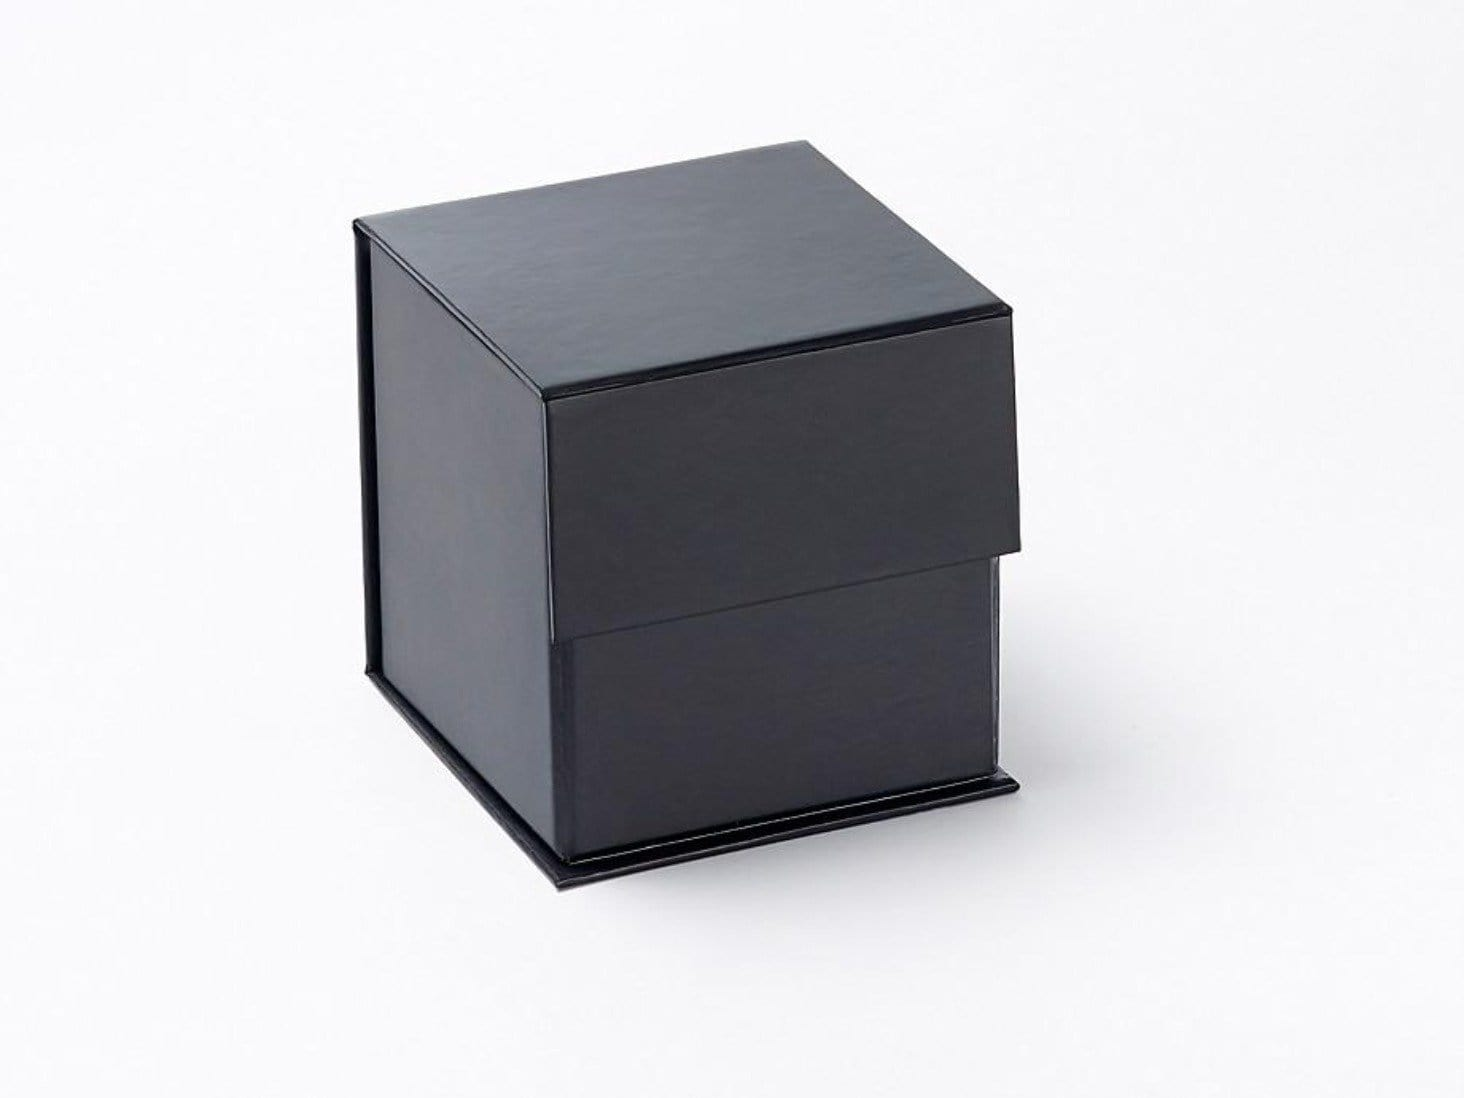 Sample Black Small Cube Gift Box without ribbon from Foldabox UK